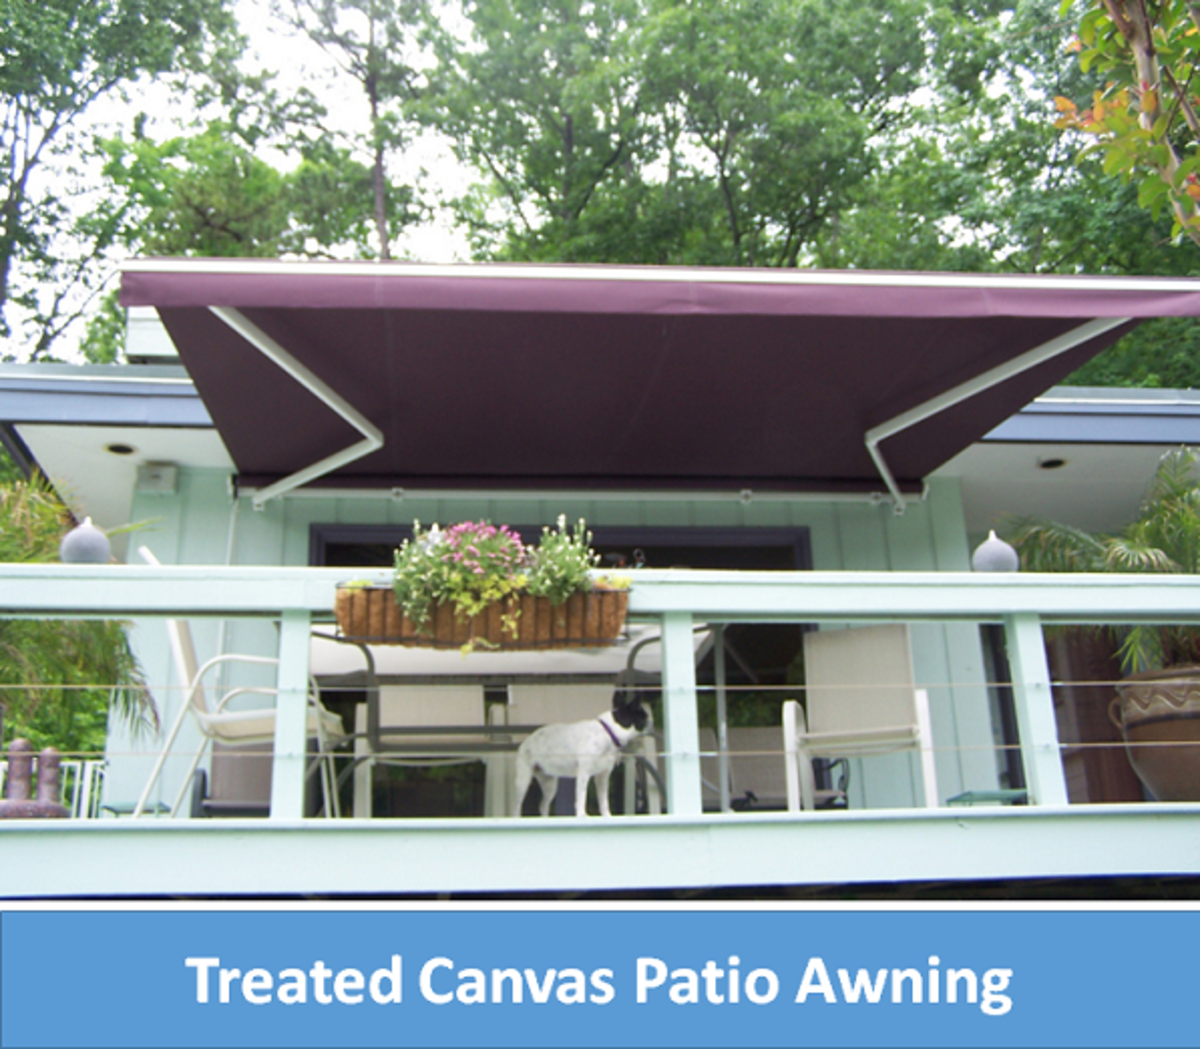 Patio shade - Treated canvas awning. A beautiful colour coordination with the patio